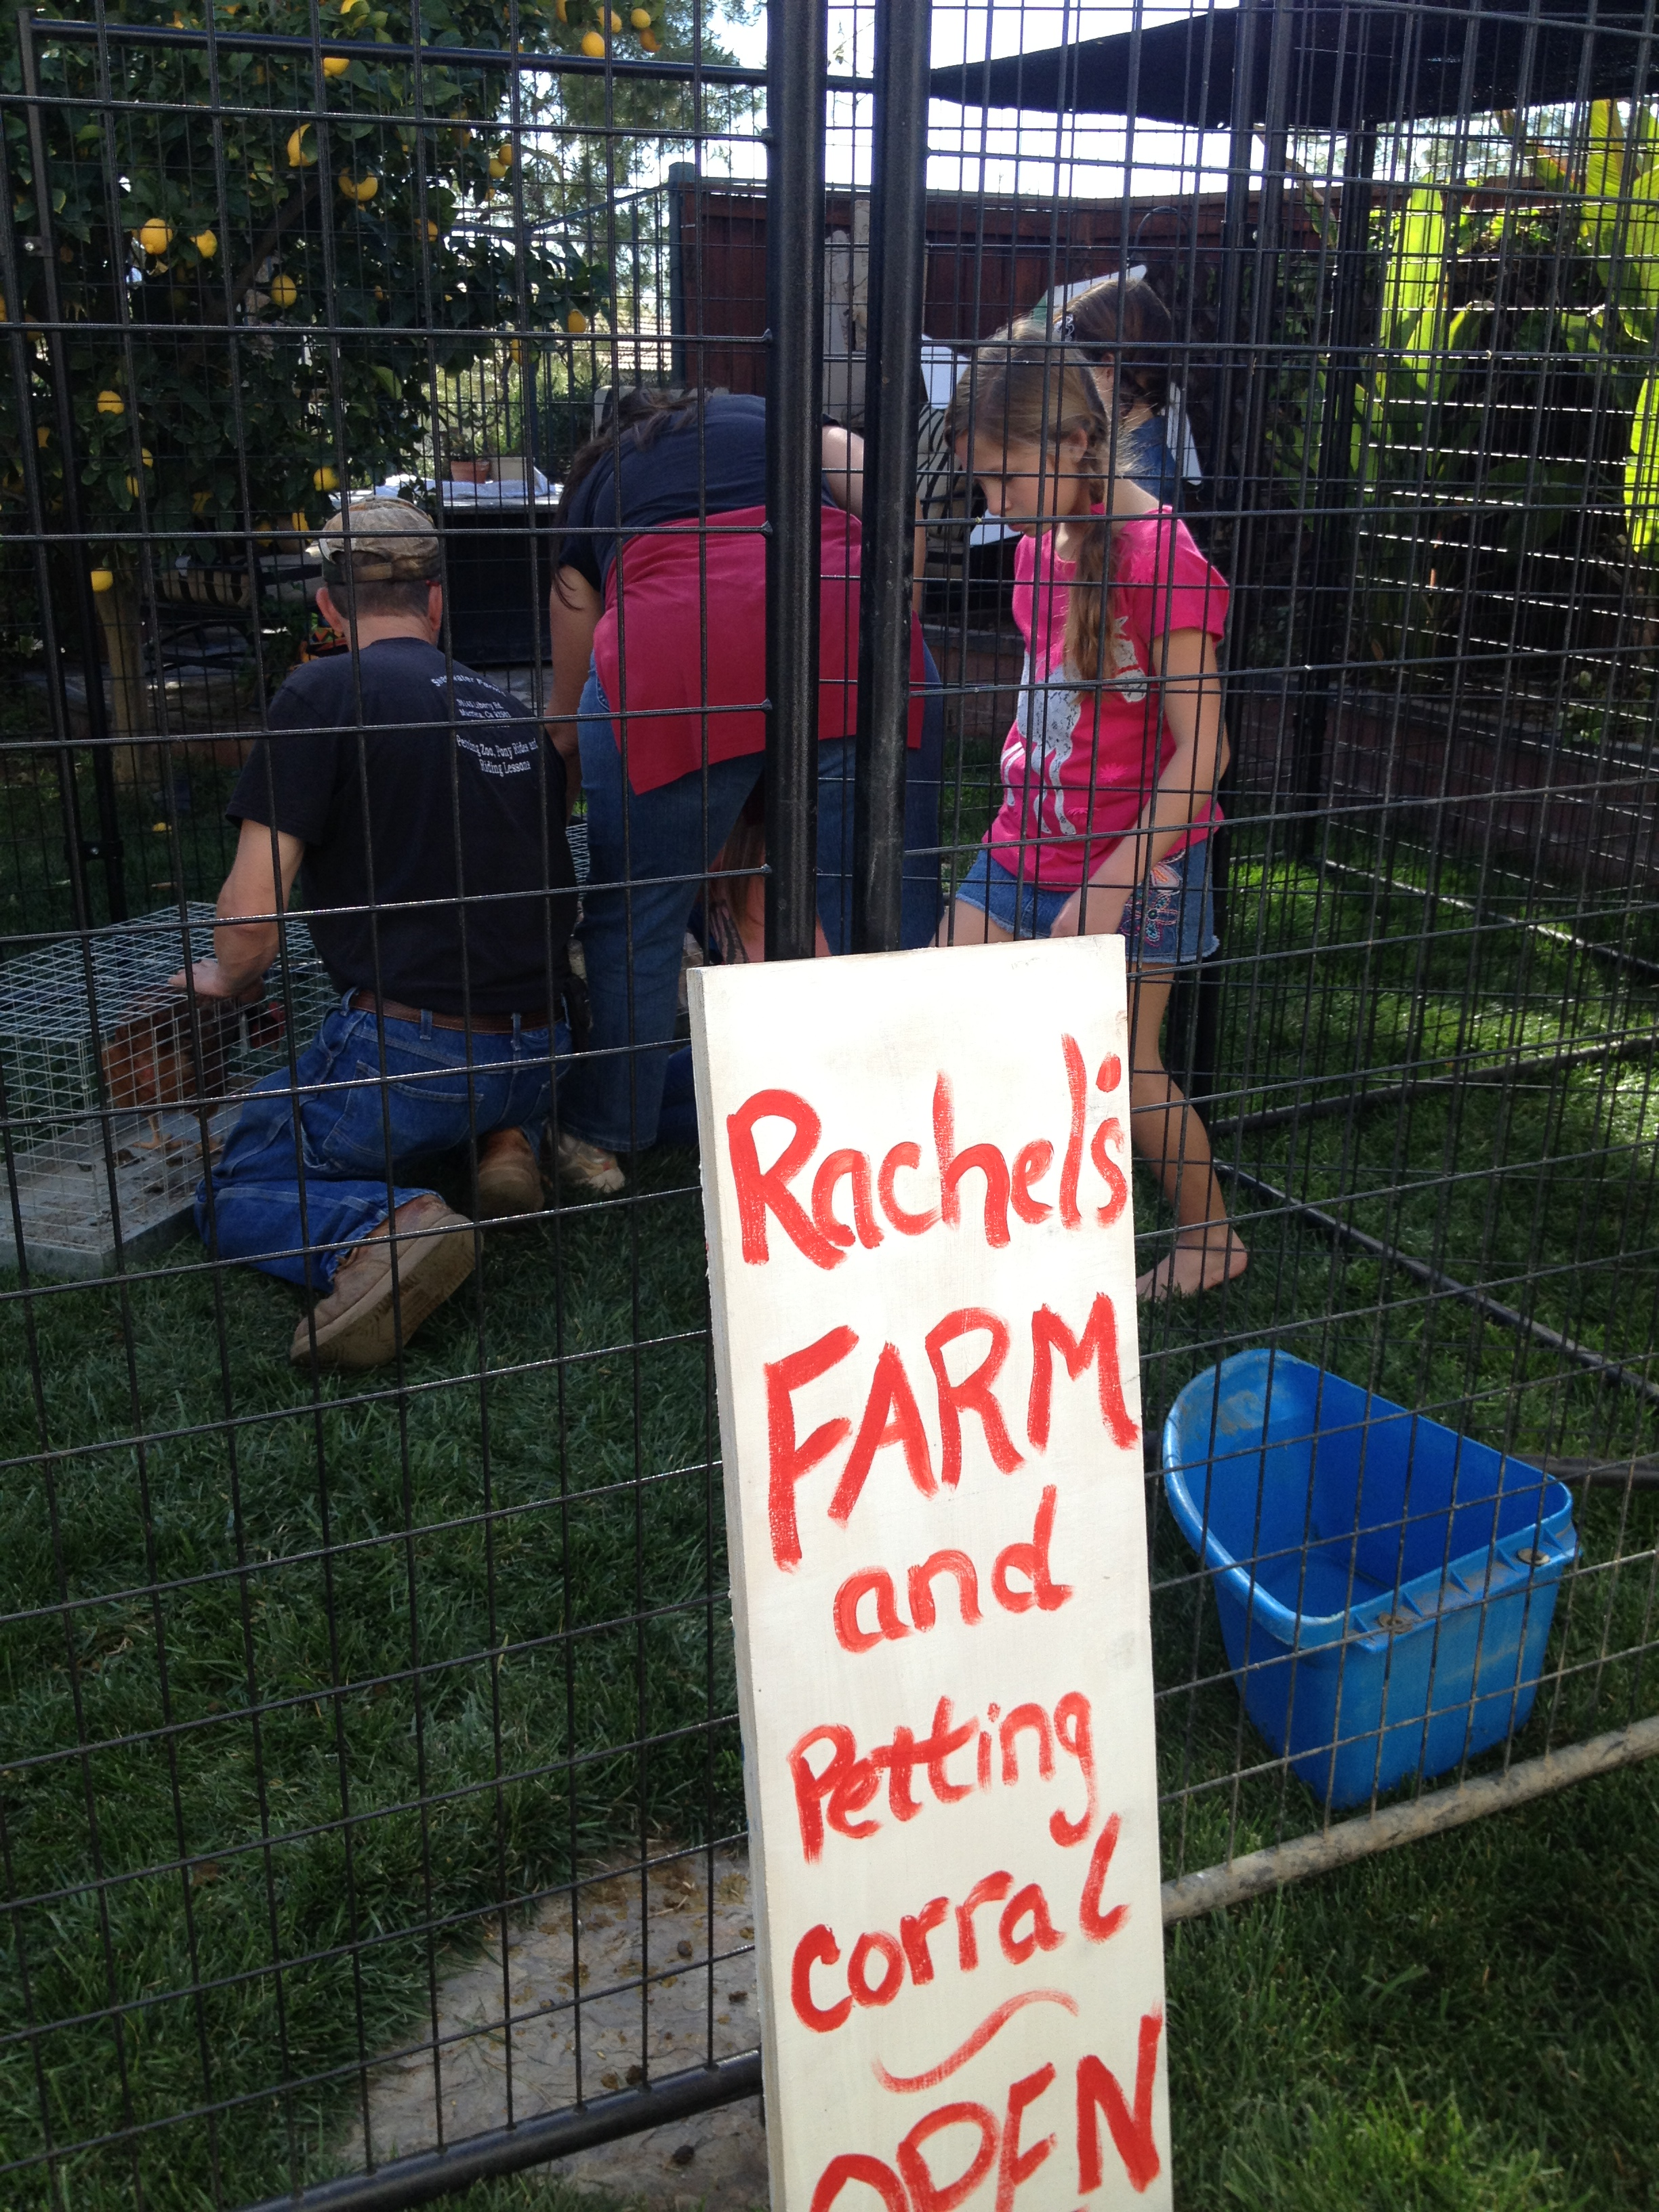 Ray's farm and petting zoo open for business!